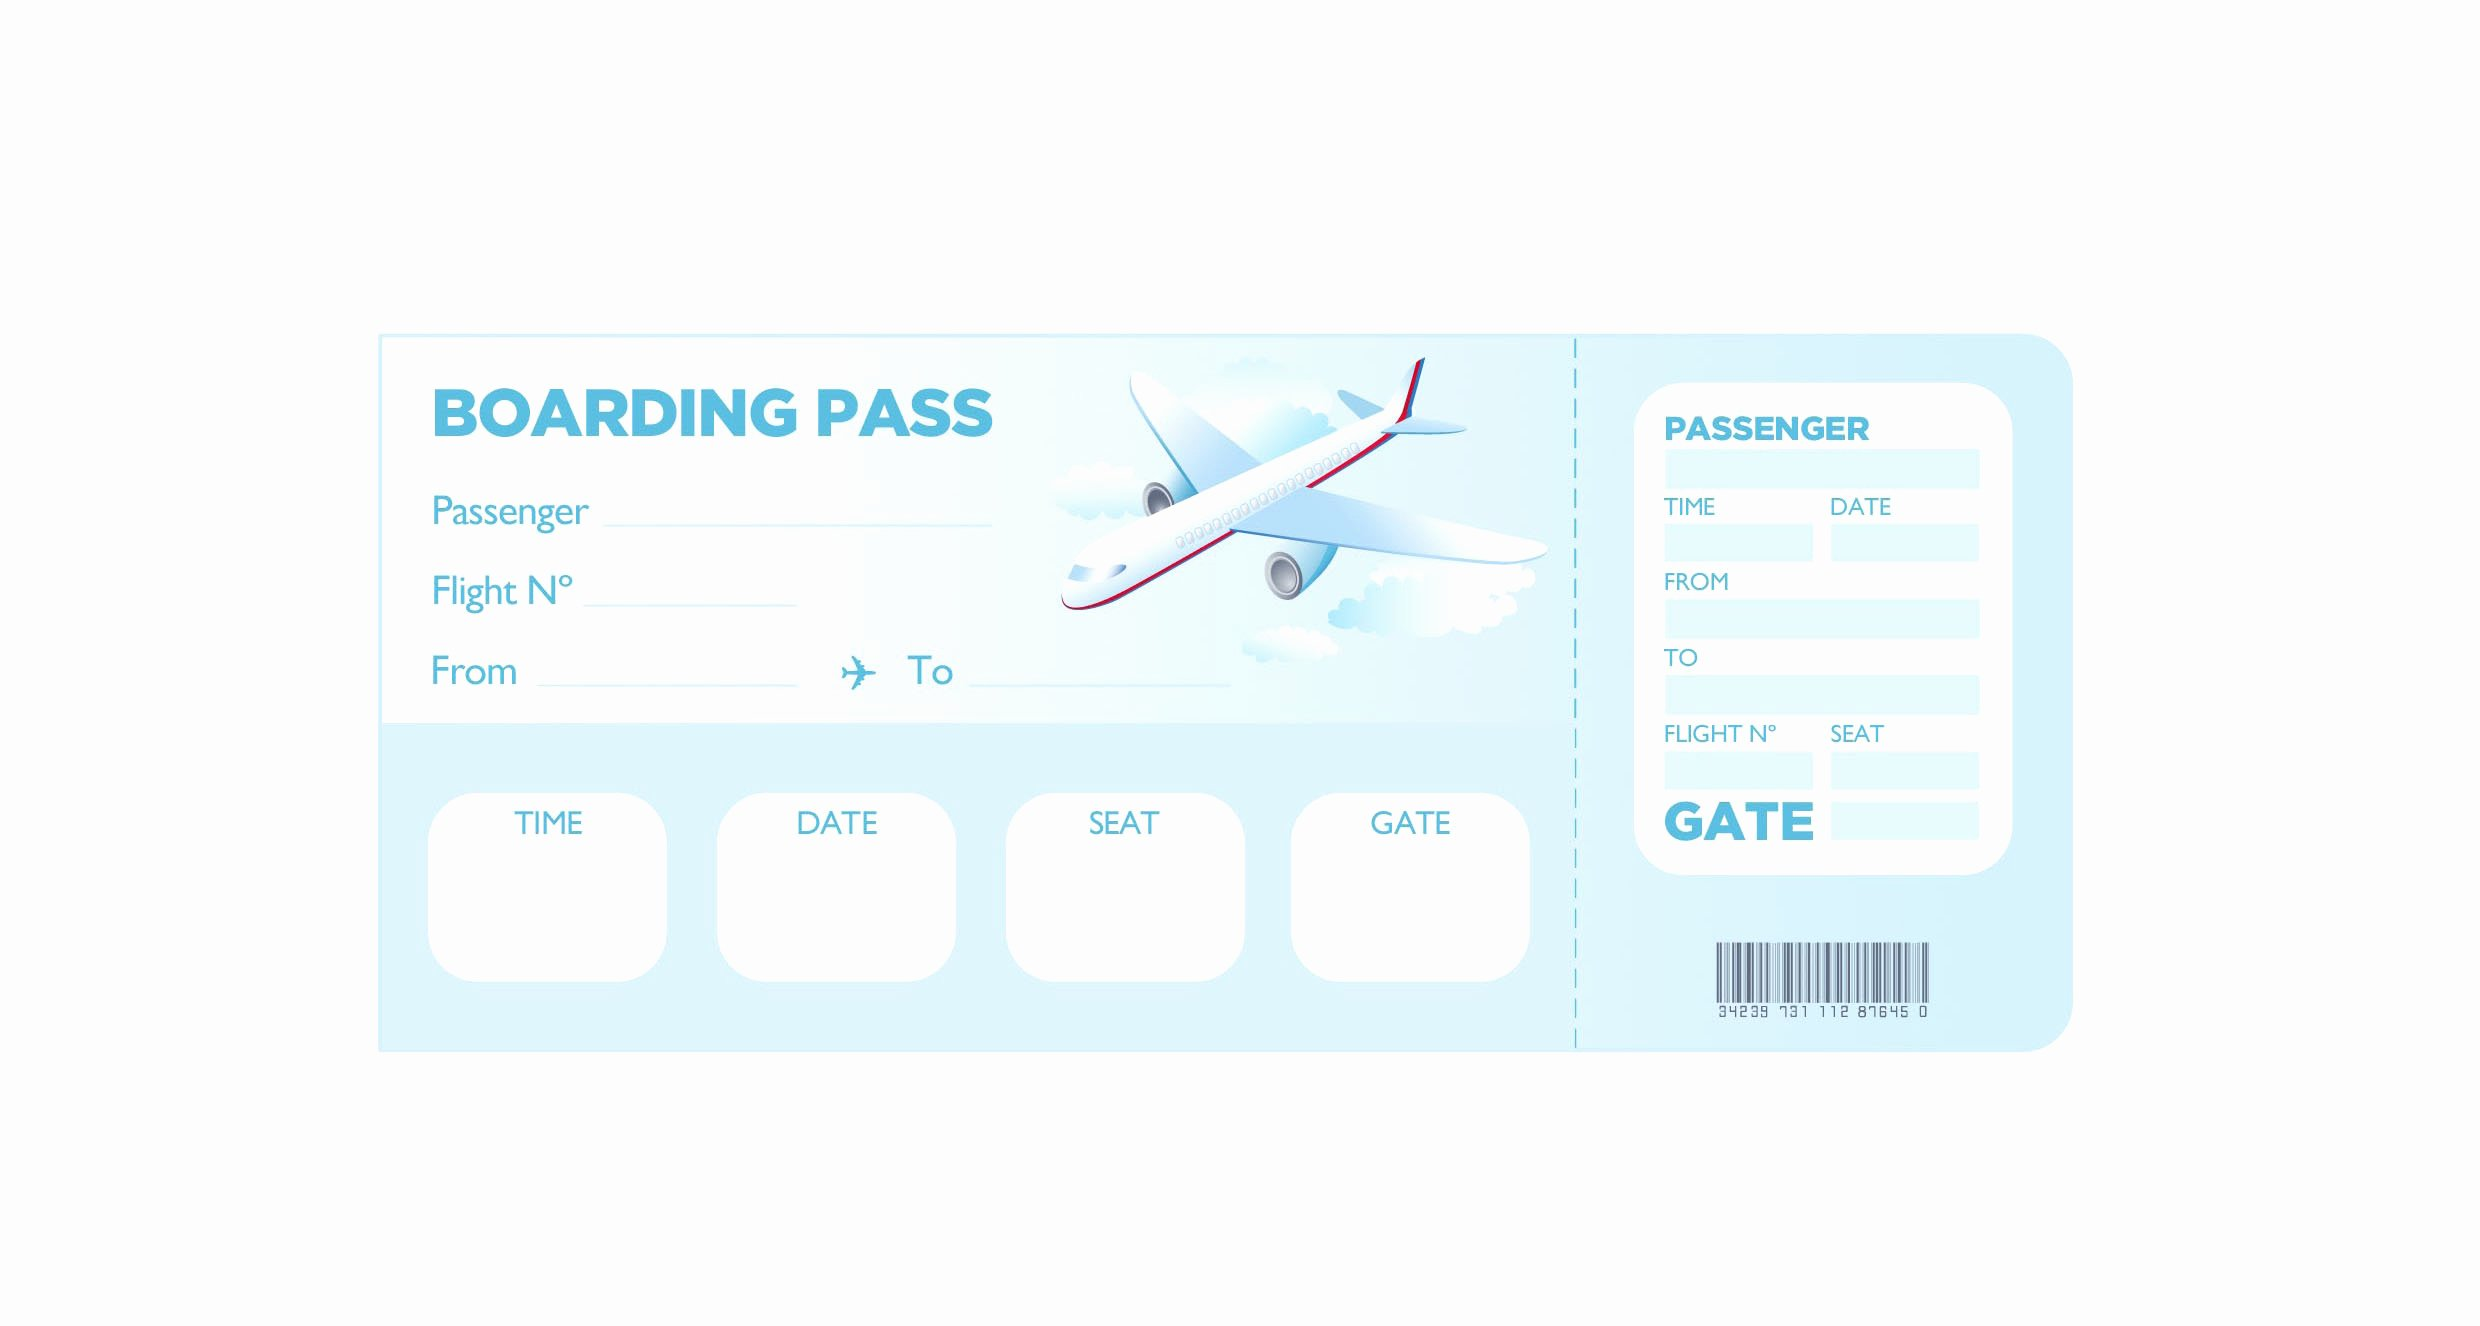 Boarding Pass Template Free Inspirational Super Fun Summer Challenge 2014 Week 3 – Her Life Inspired